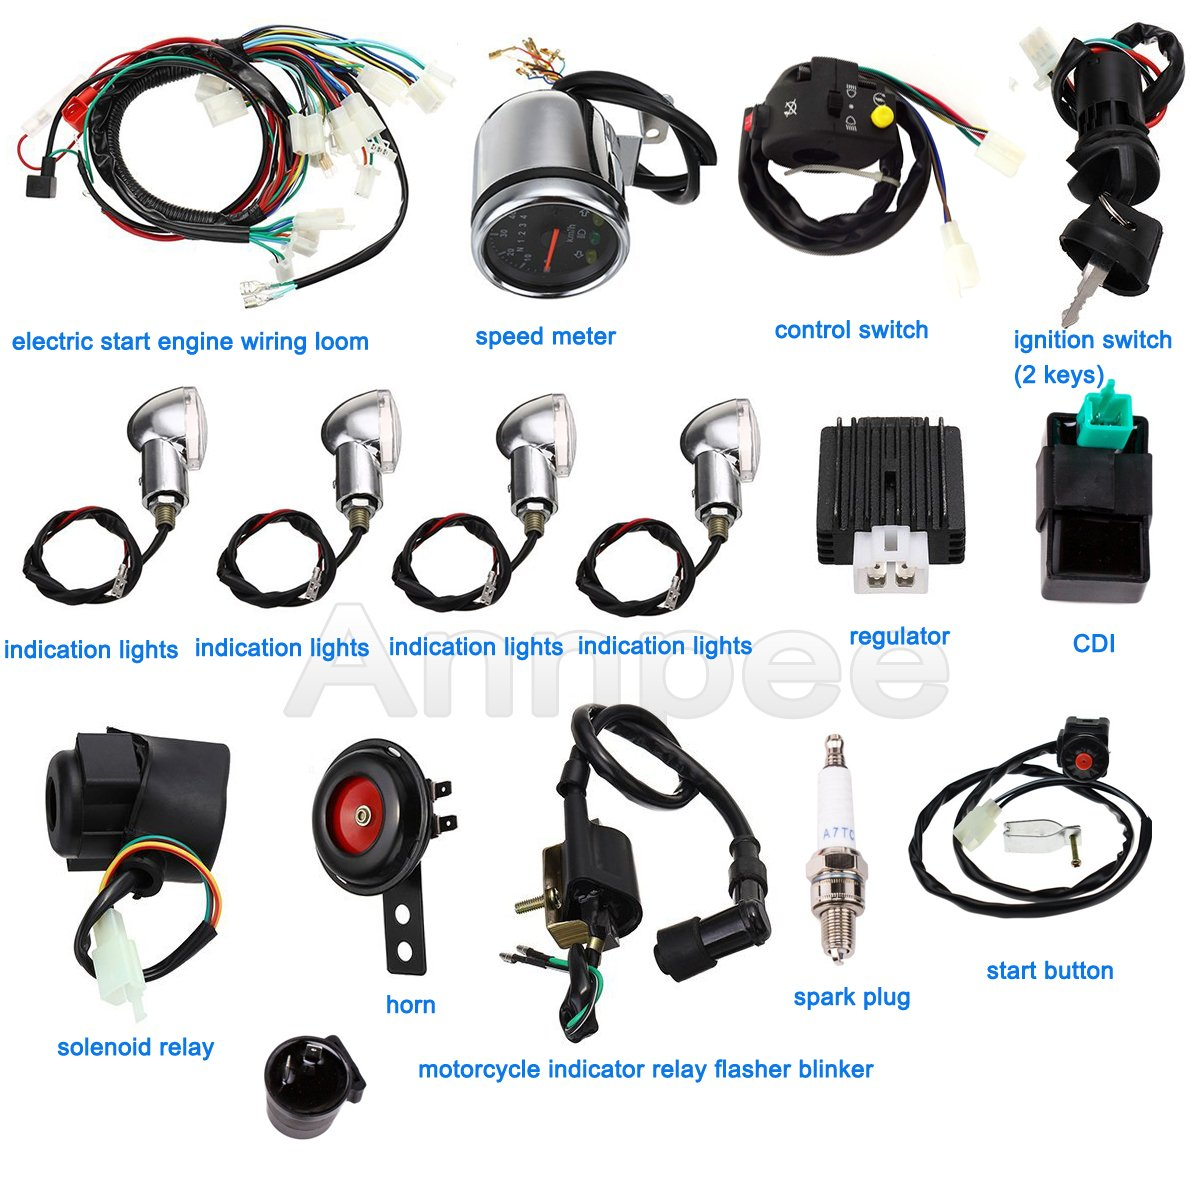 Annpee Full Electric Start Engine Wiring Harness Loom Motorcycle Looms 110cc 125cc Quad Bike Atv Buggy Automotive